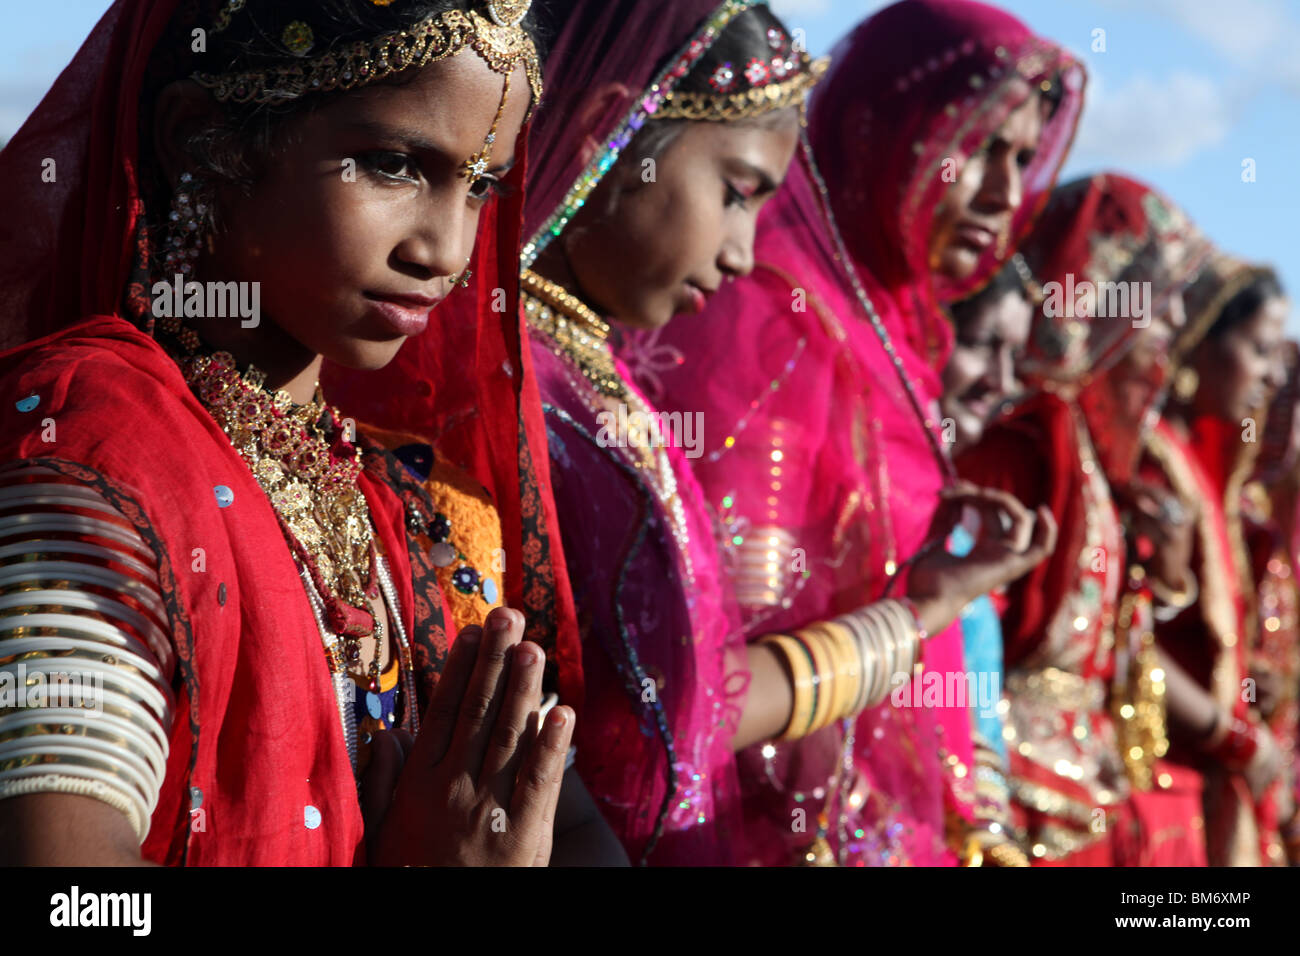 Young Indian women compete for Best Dressed at the 2009 Marwar Festival held at the stadium in Jodhpur, Rajasthan, - Stock Image